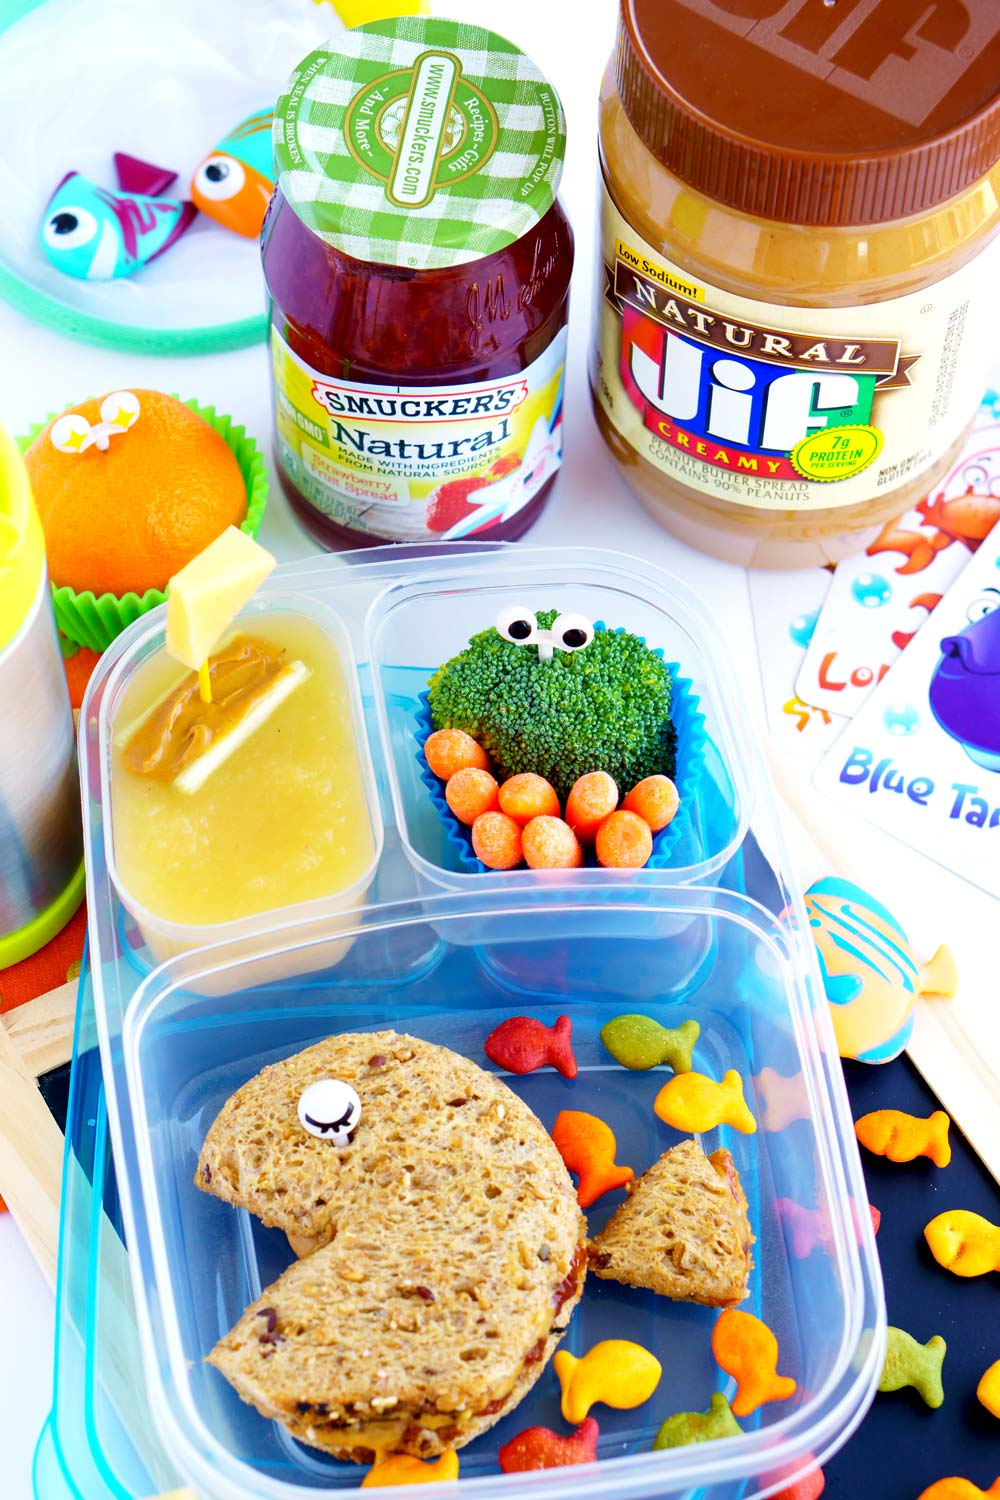 Back to School PB&J with JIF and Smuckers!